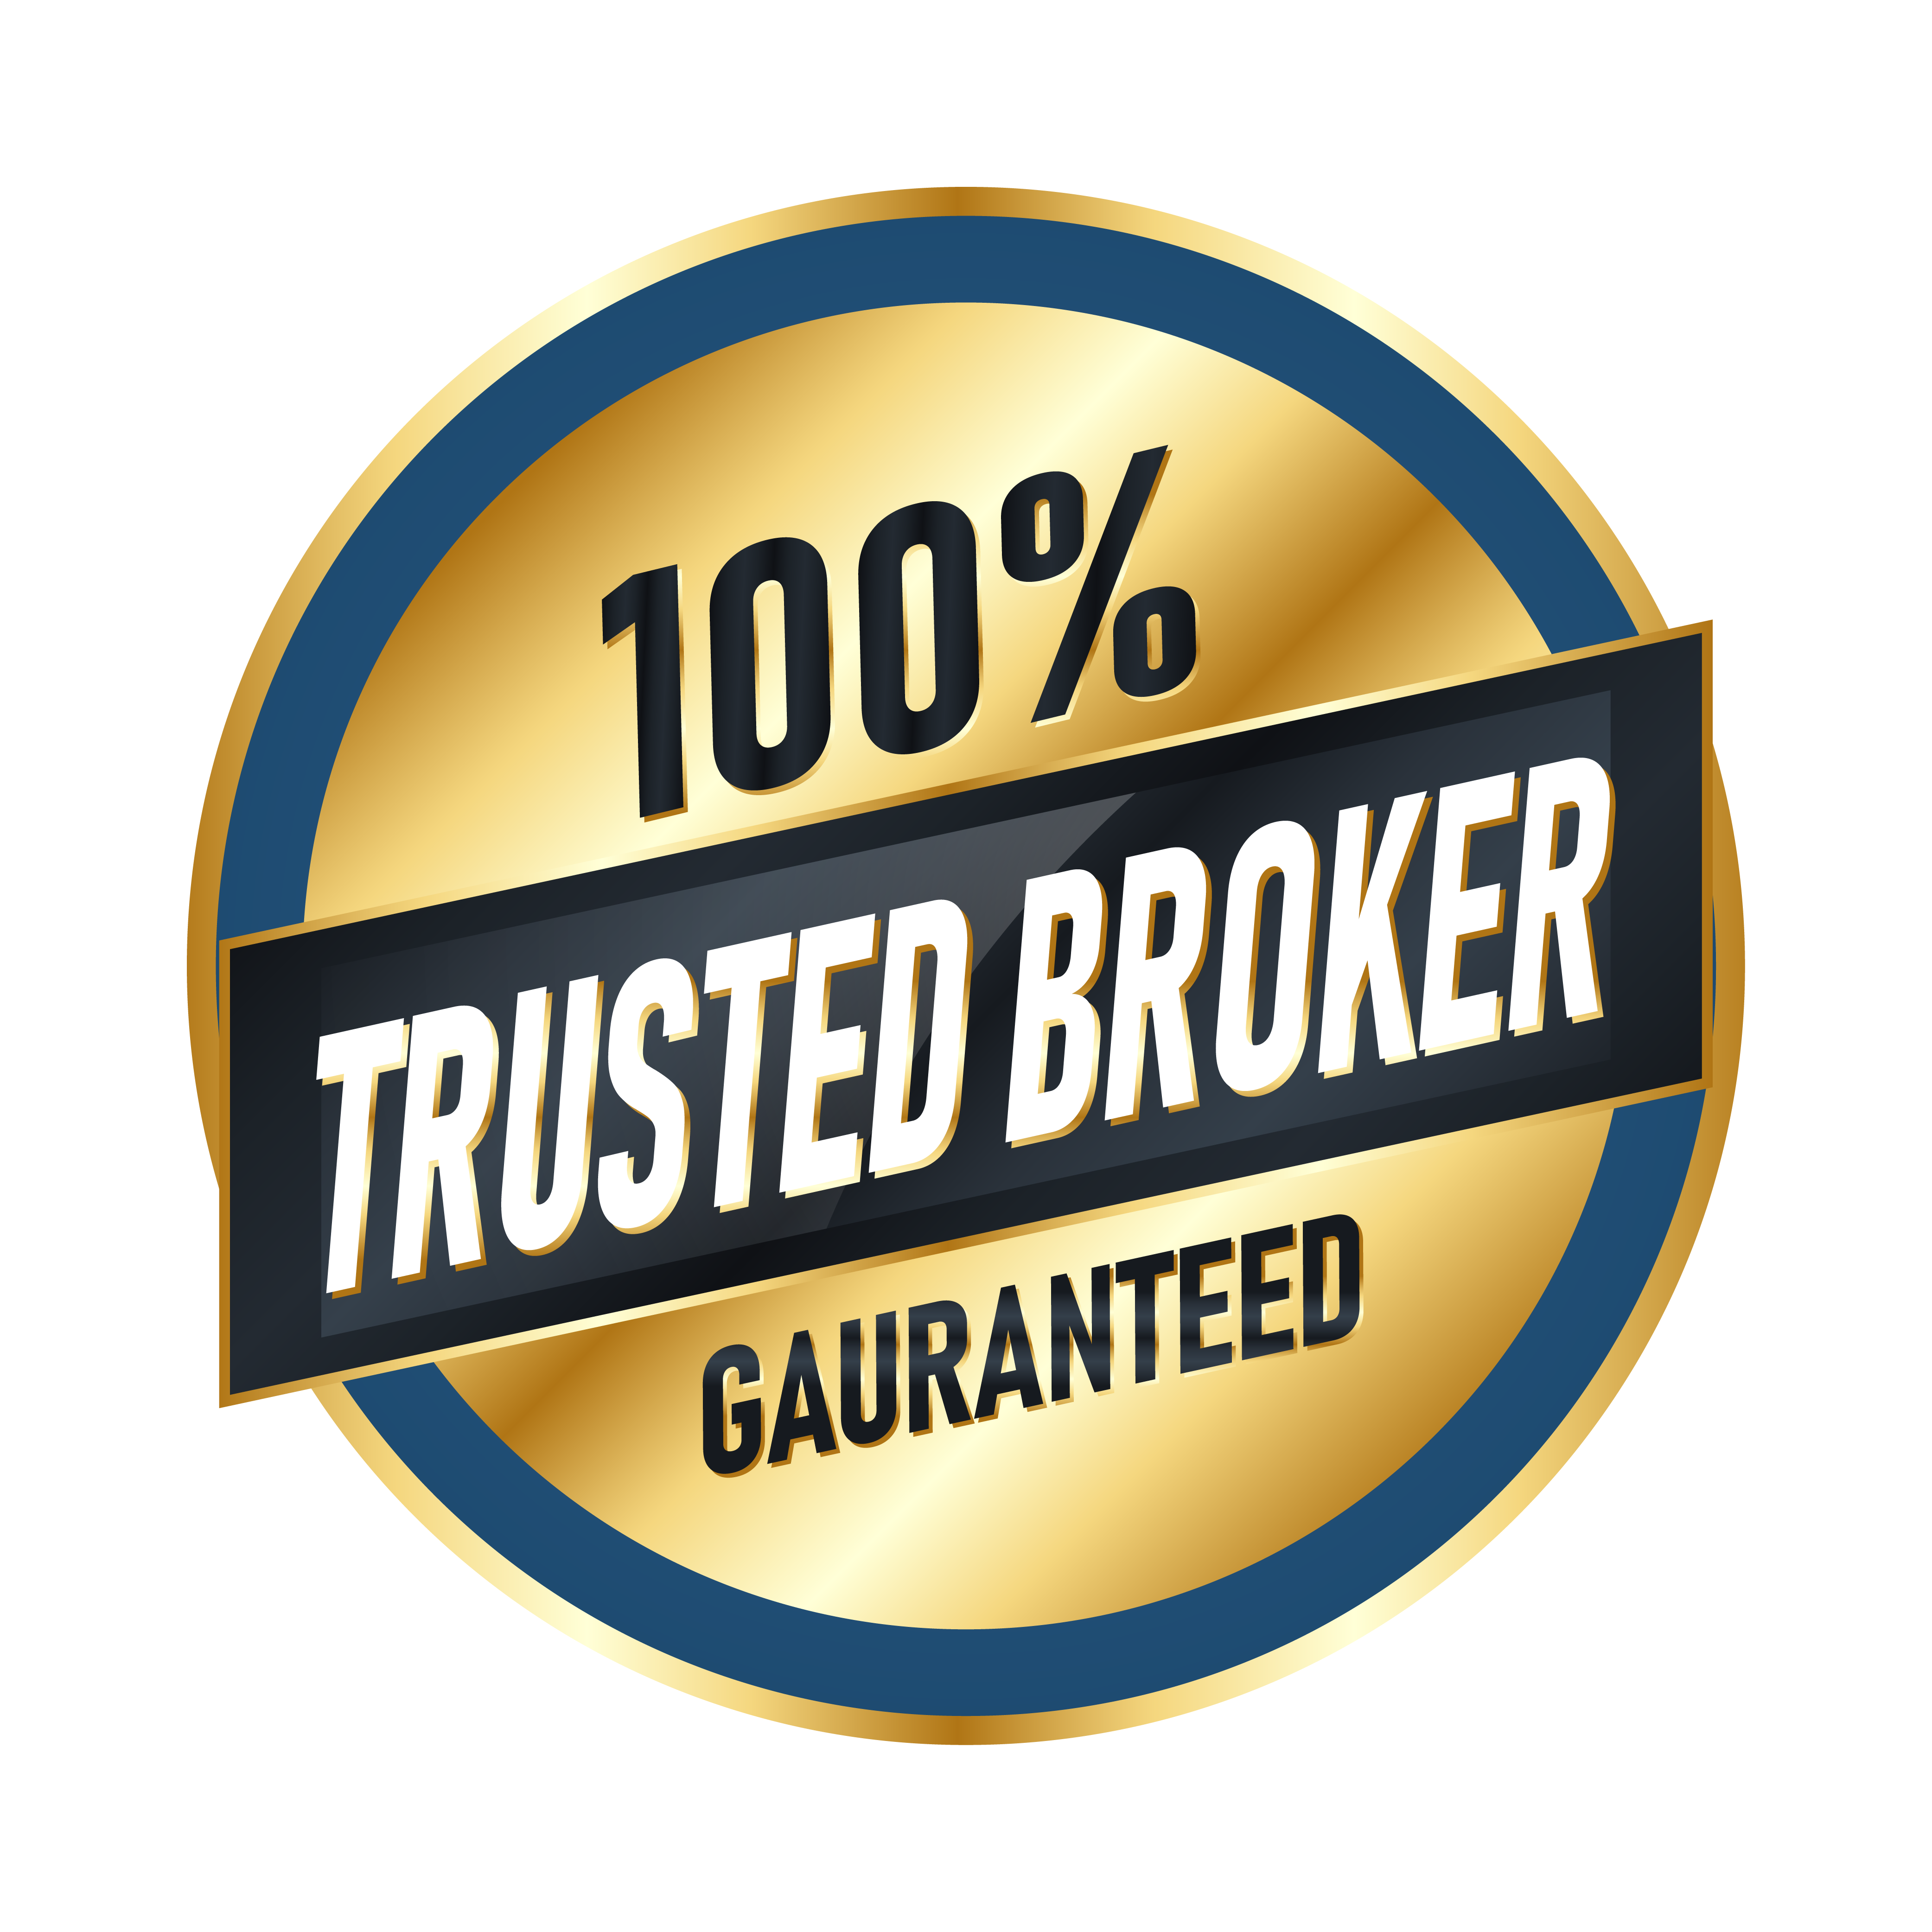 InstaForex is a trusted Broker